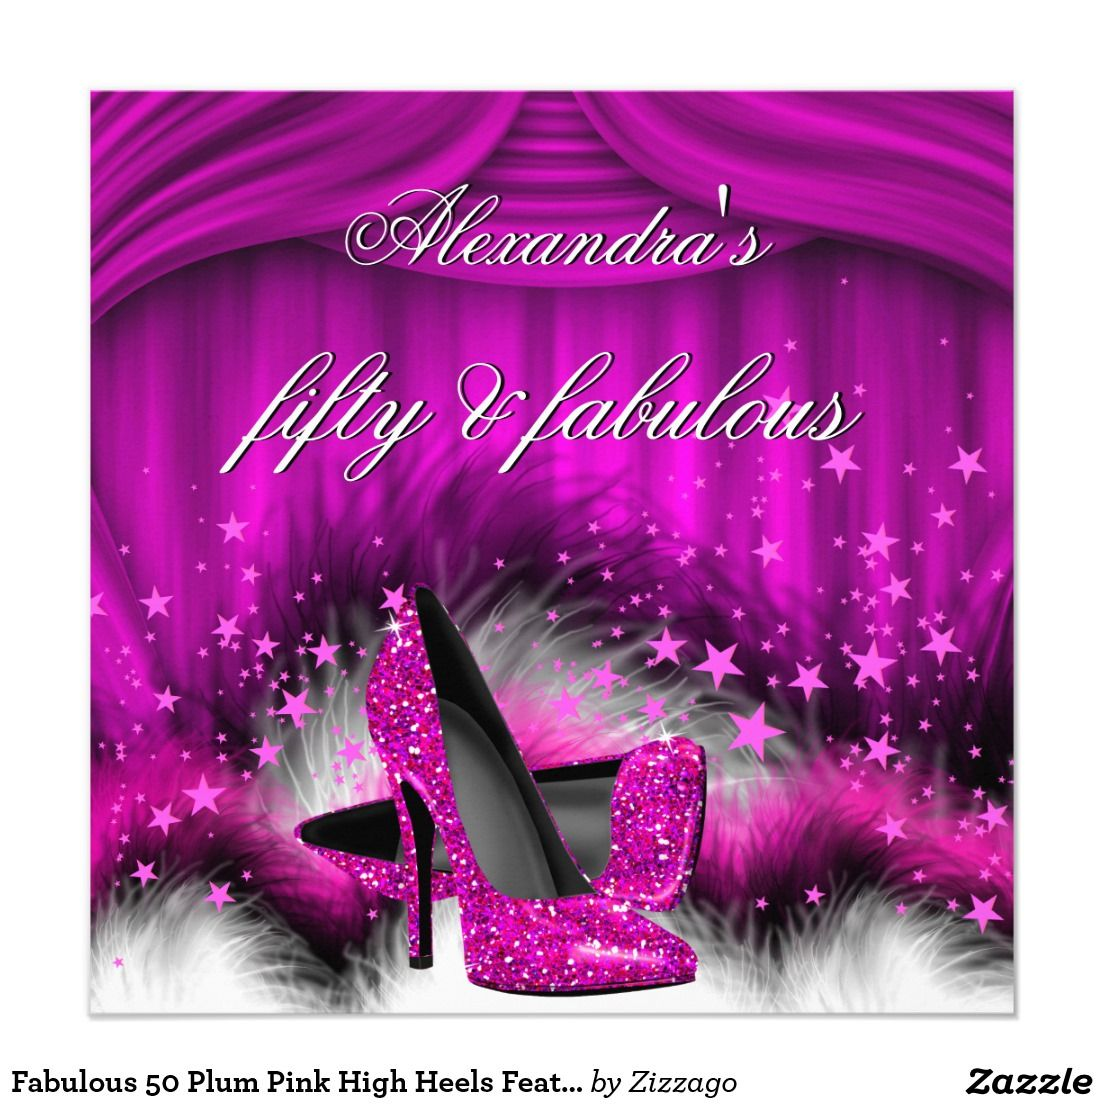 Fabulous 50 Plum Pink High Heels Feathers Birthday 525x525 Square